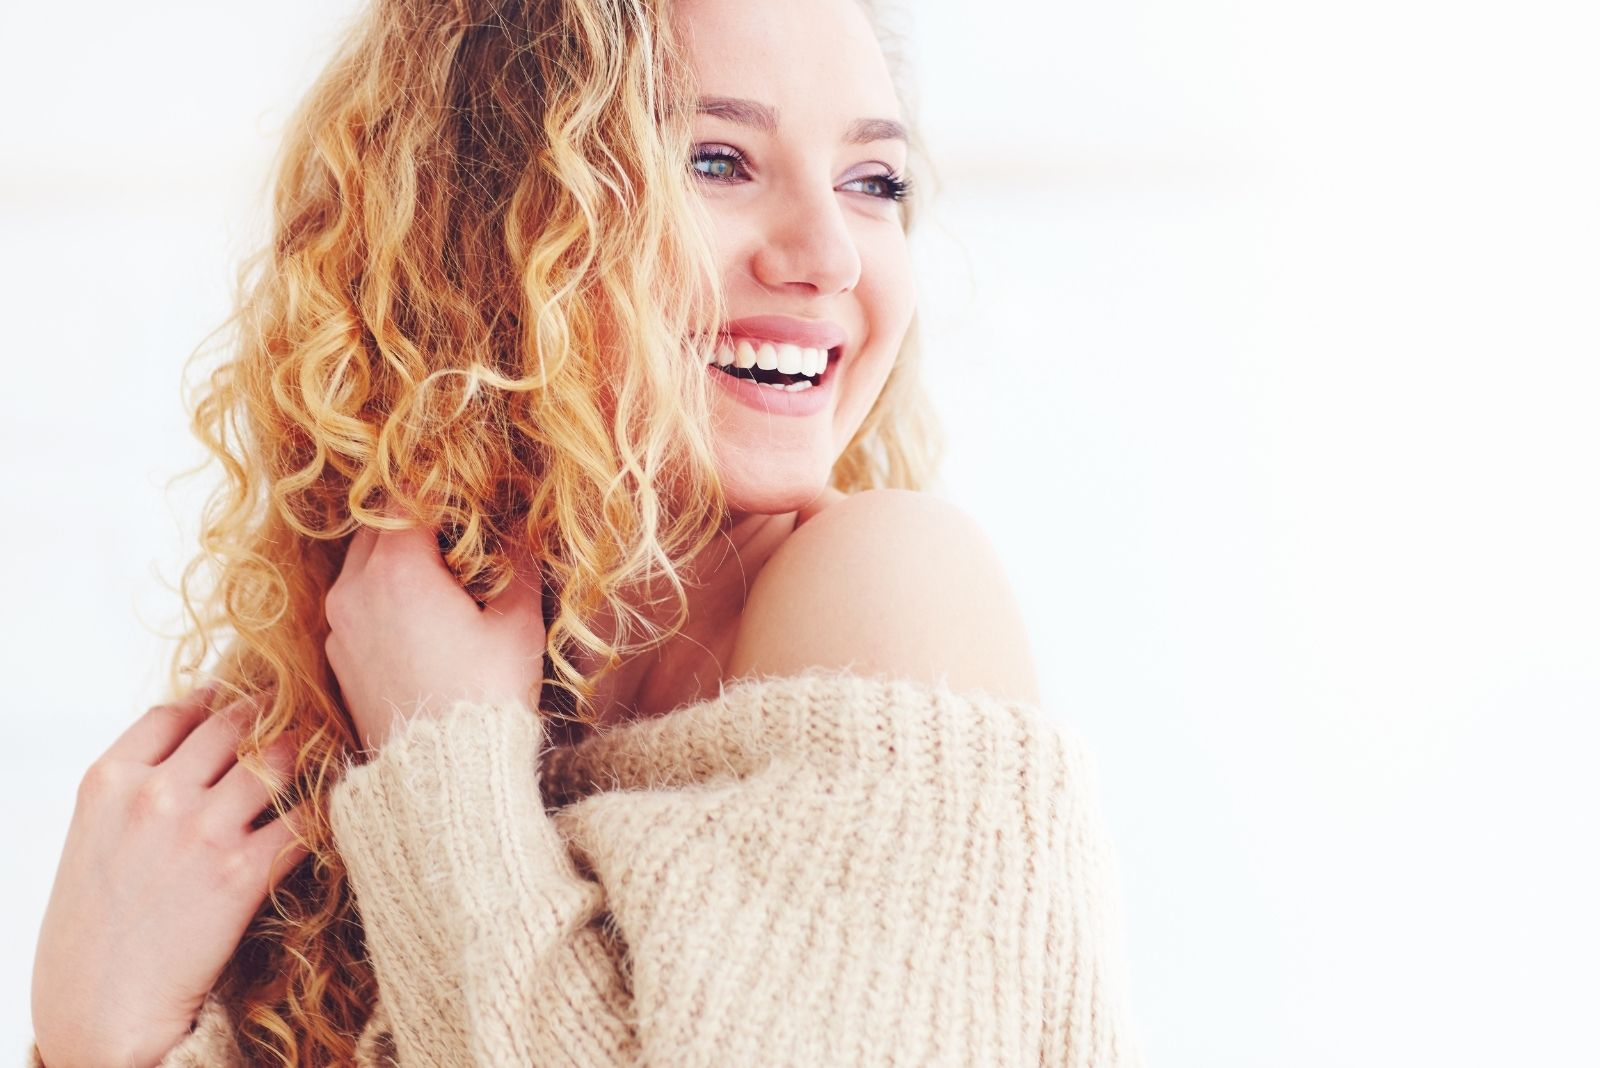 beautiful happy woman with curly blonde hair smiling